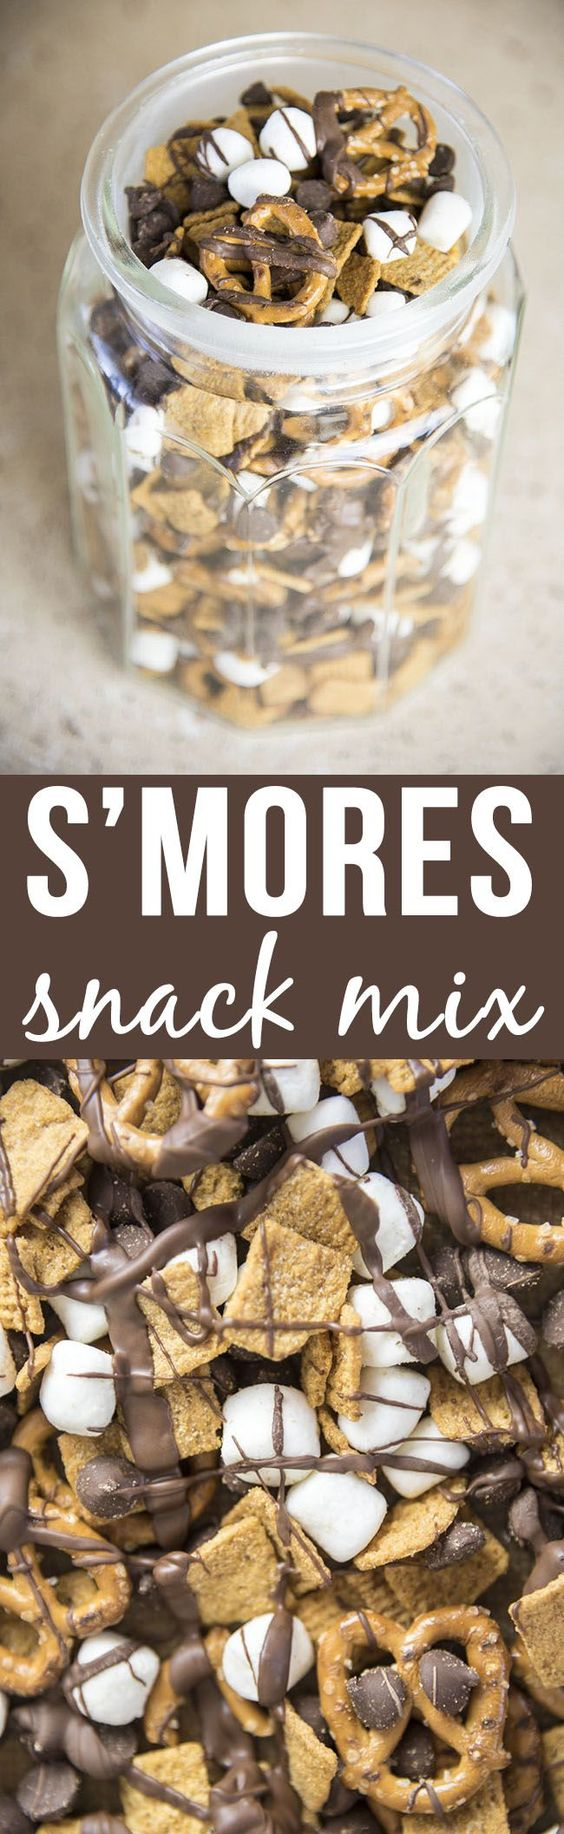 S'mores Snack Mix - This 4 ingredient snack mix is so simple to make, and it has the same great flavors of s'mores. It's the perfect snack, or late night Shimmer and Shine Sleepover Party treat.: